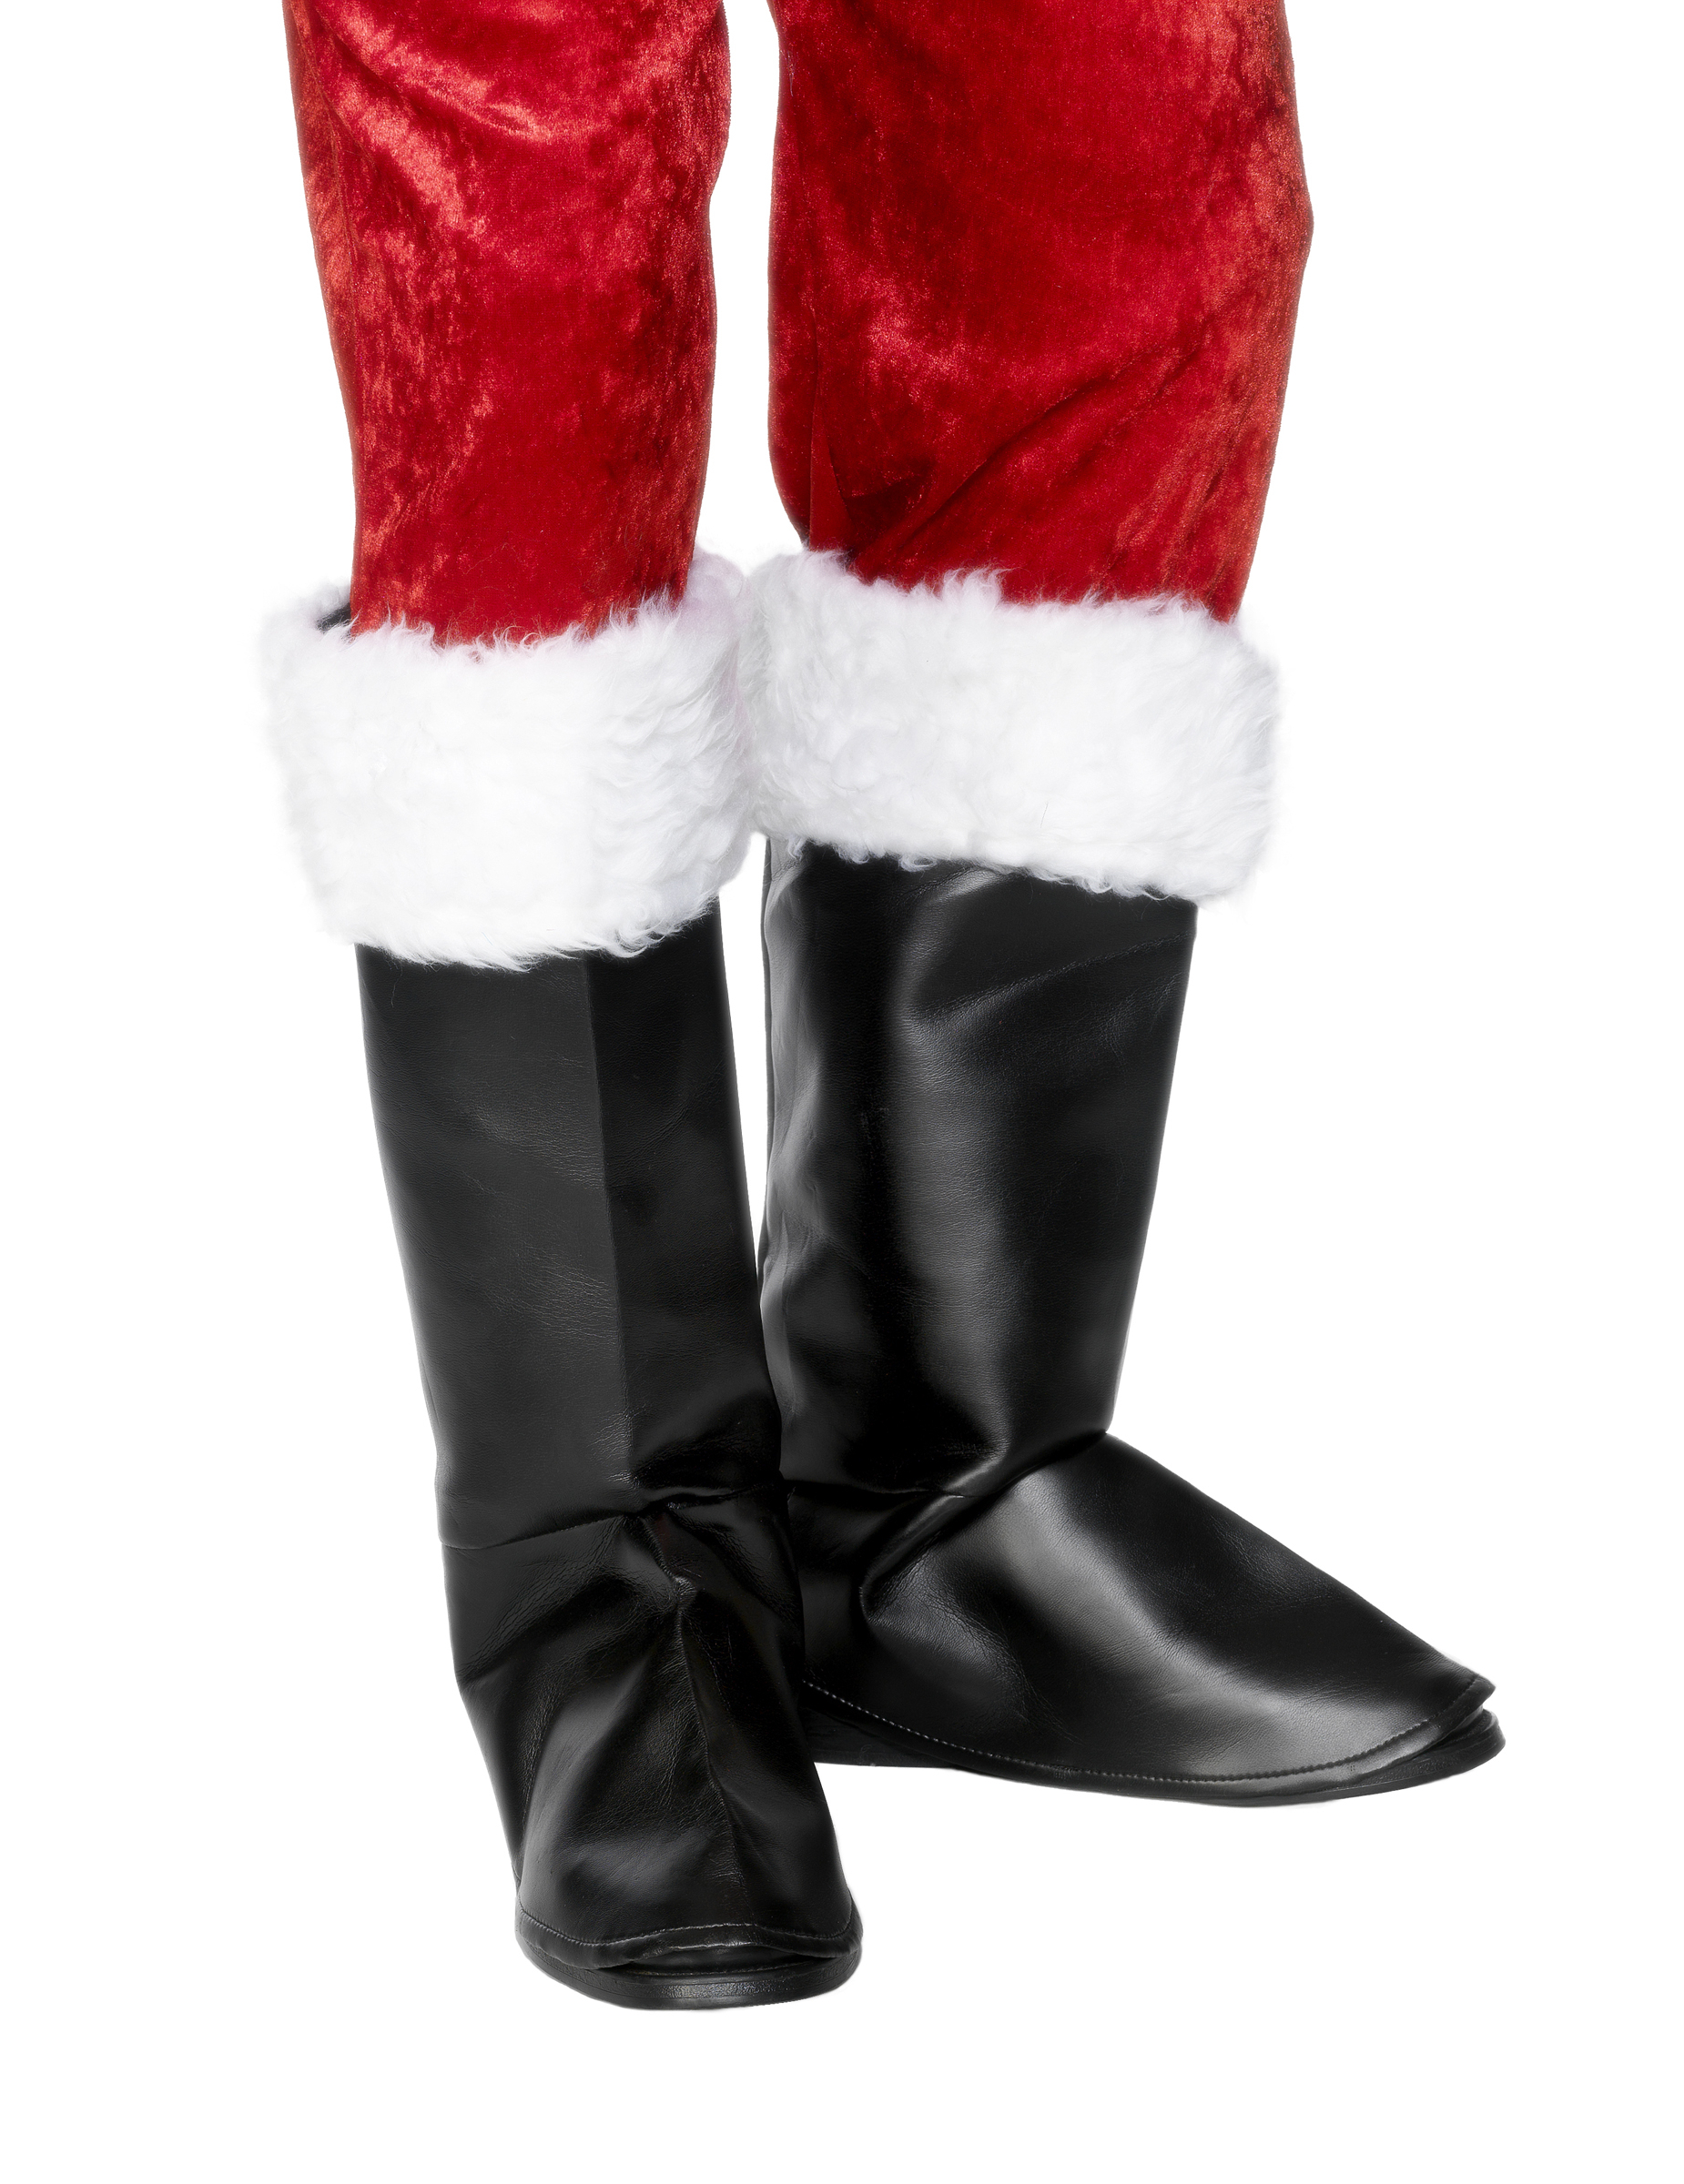 santa boot covers accessories and fancy dress costumes vegaoo. Black Bedroom Furniture Sets. Home Design Ideas